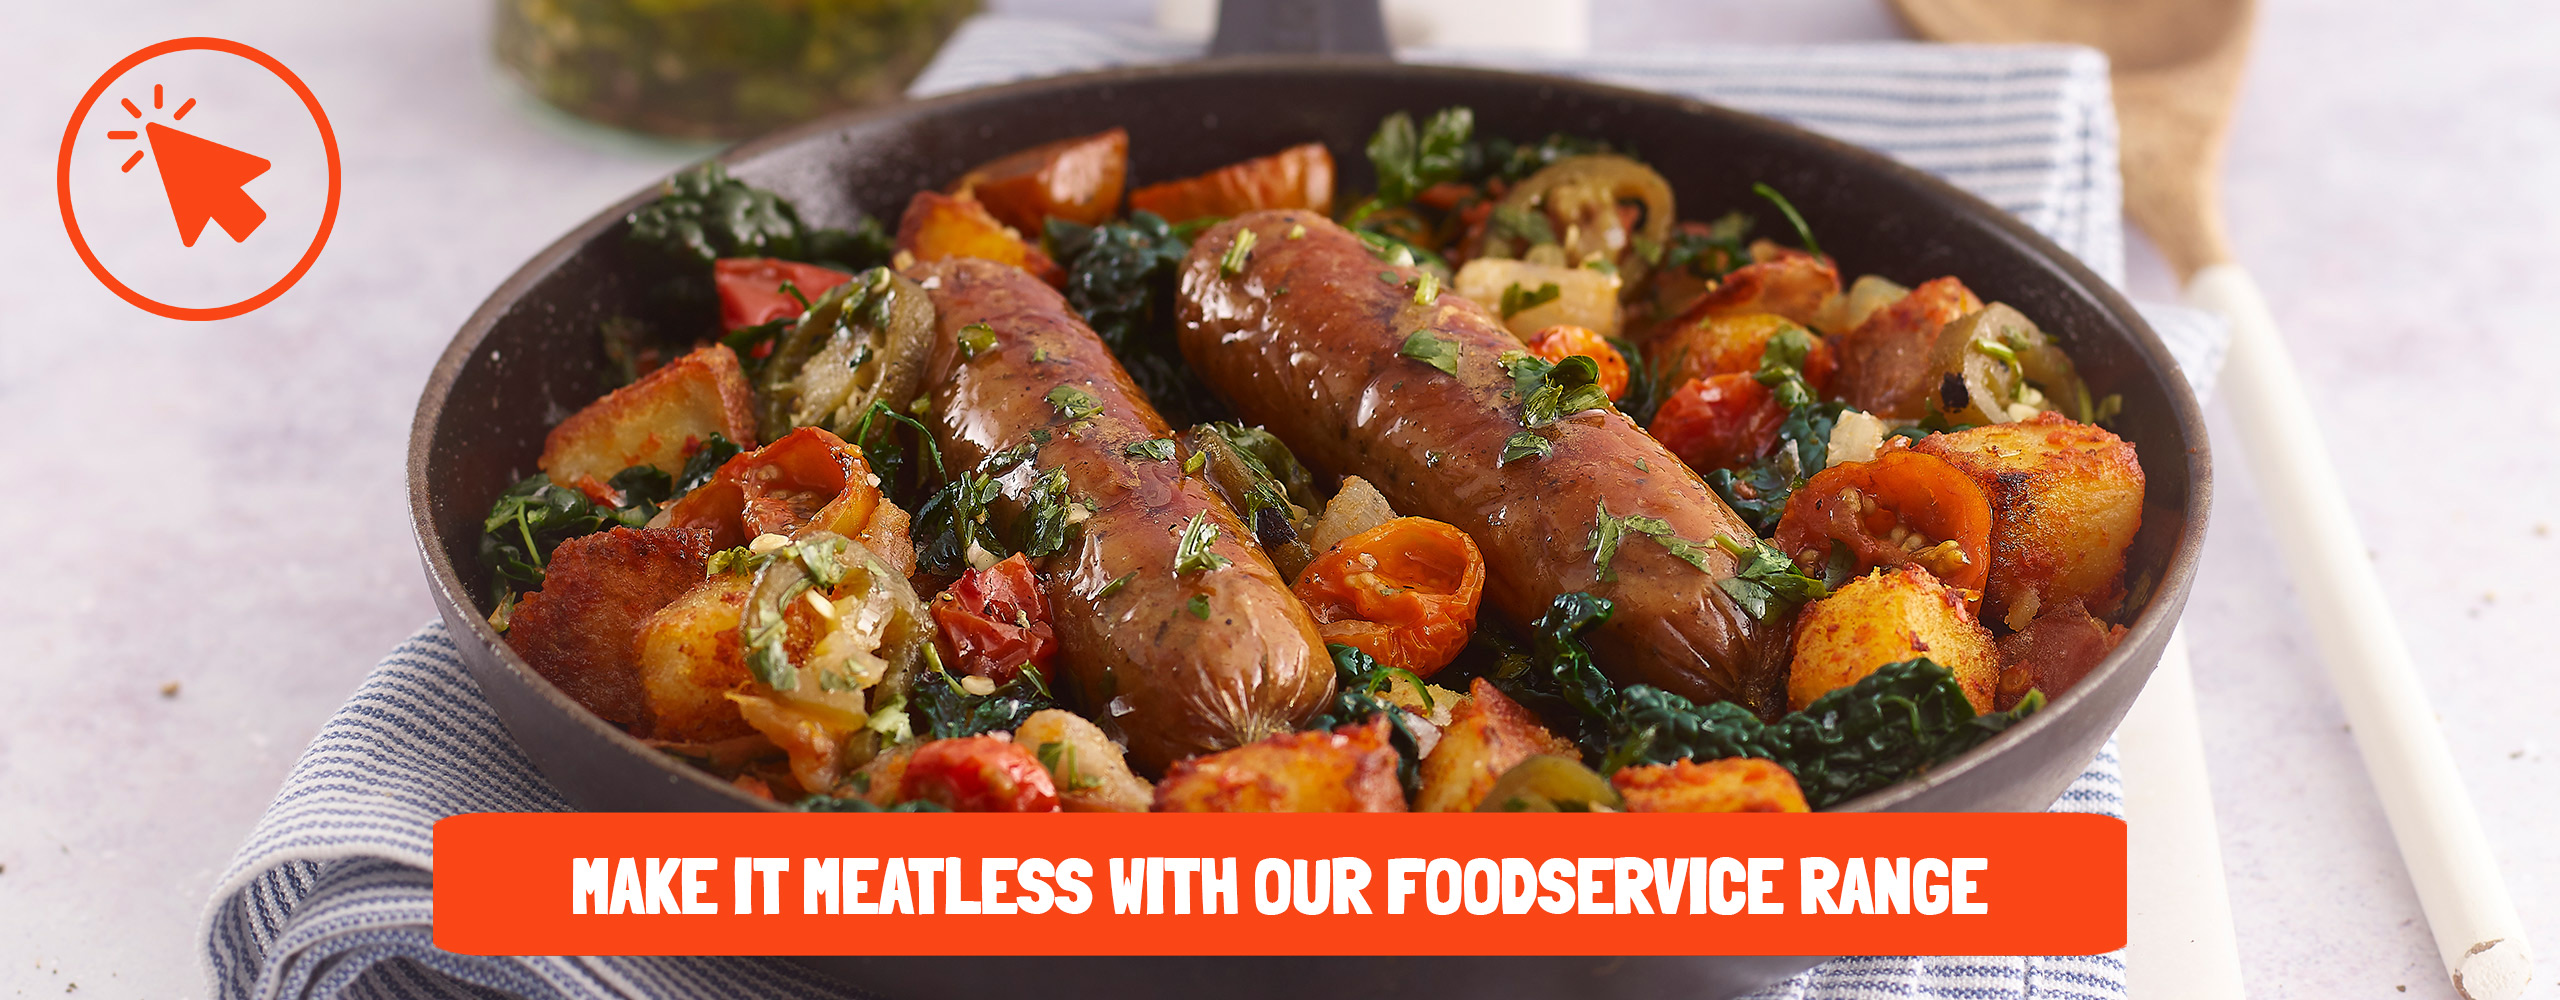 Meatless Farm Professionals Banner